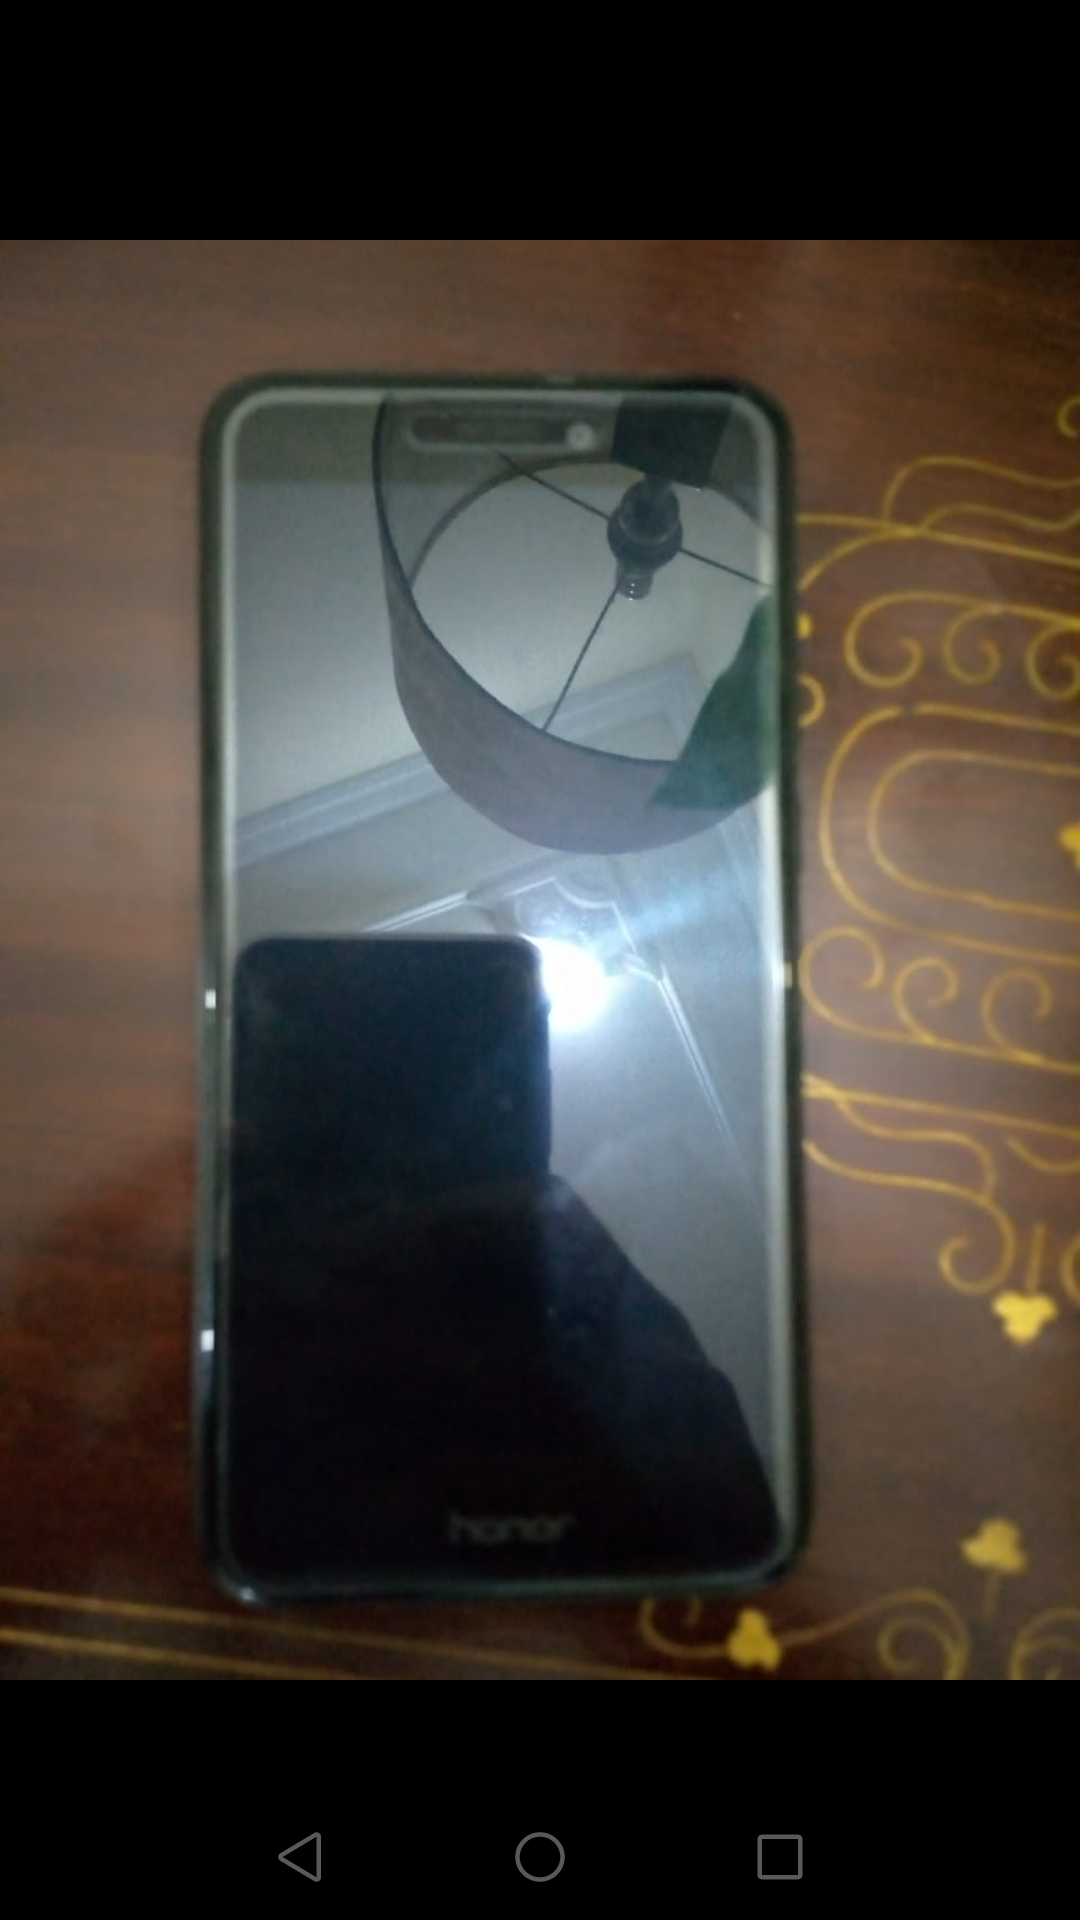 Huawei Honor 8 Lite for sale in perfect working condition - photo 1